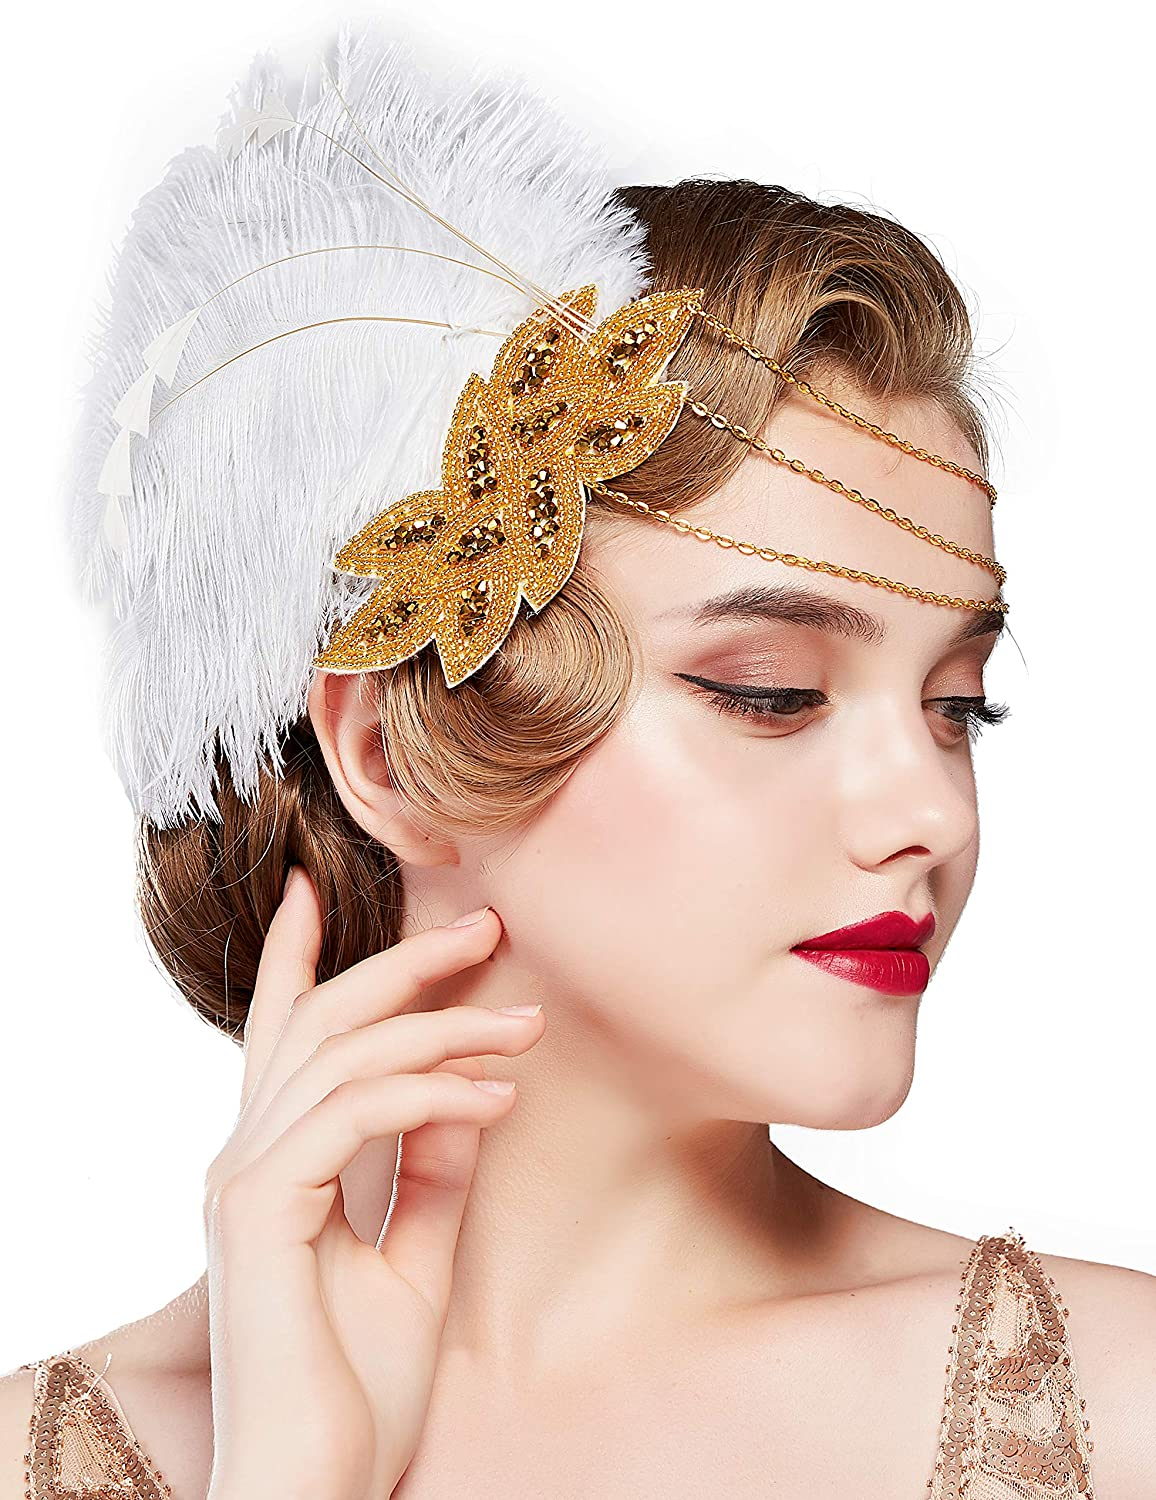 Roaring 20s Feather Headband 1920s Flapper Headpiece Perfect Costume Jewelry Black Gatsby Hair Accessories